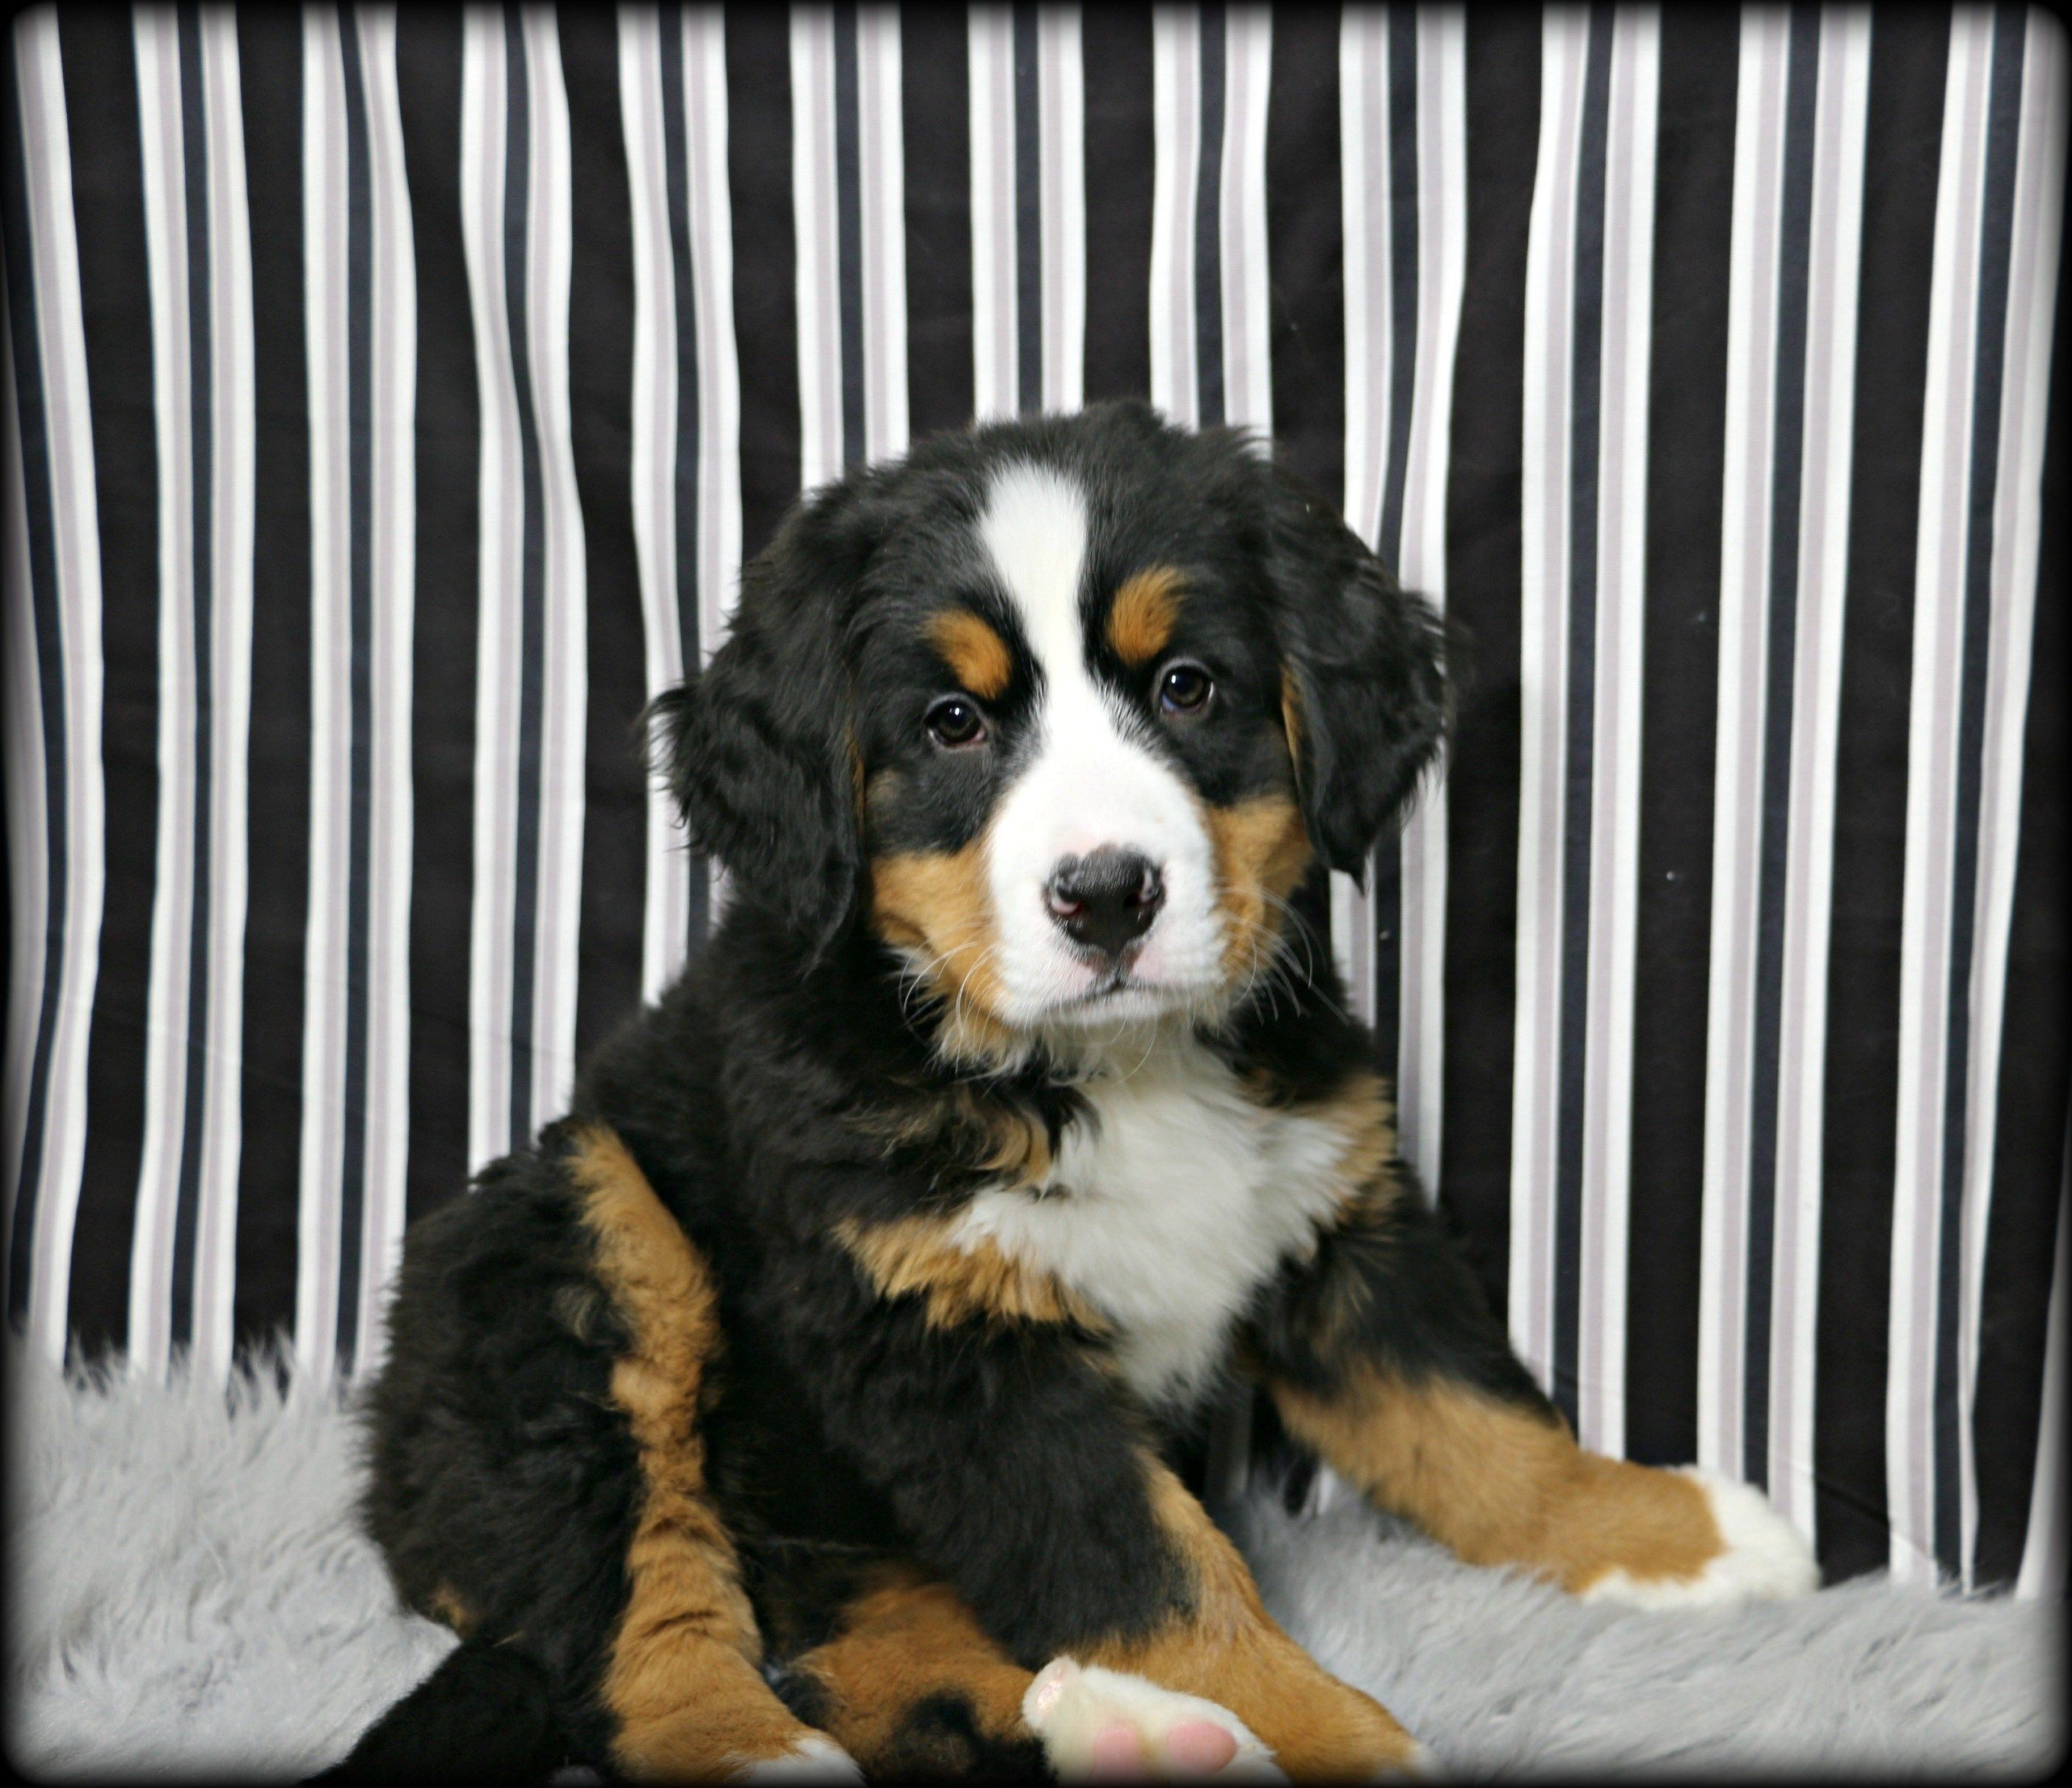 Puppies For Sale Petland In Overland Park Kansas City Puppies For Sale Puppies Petland Puppies